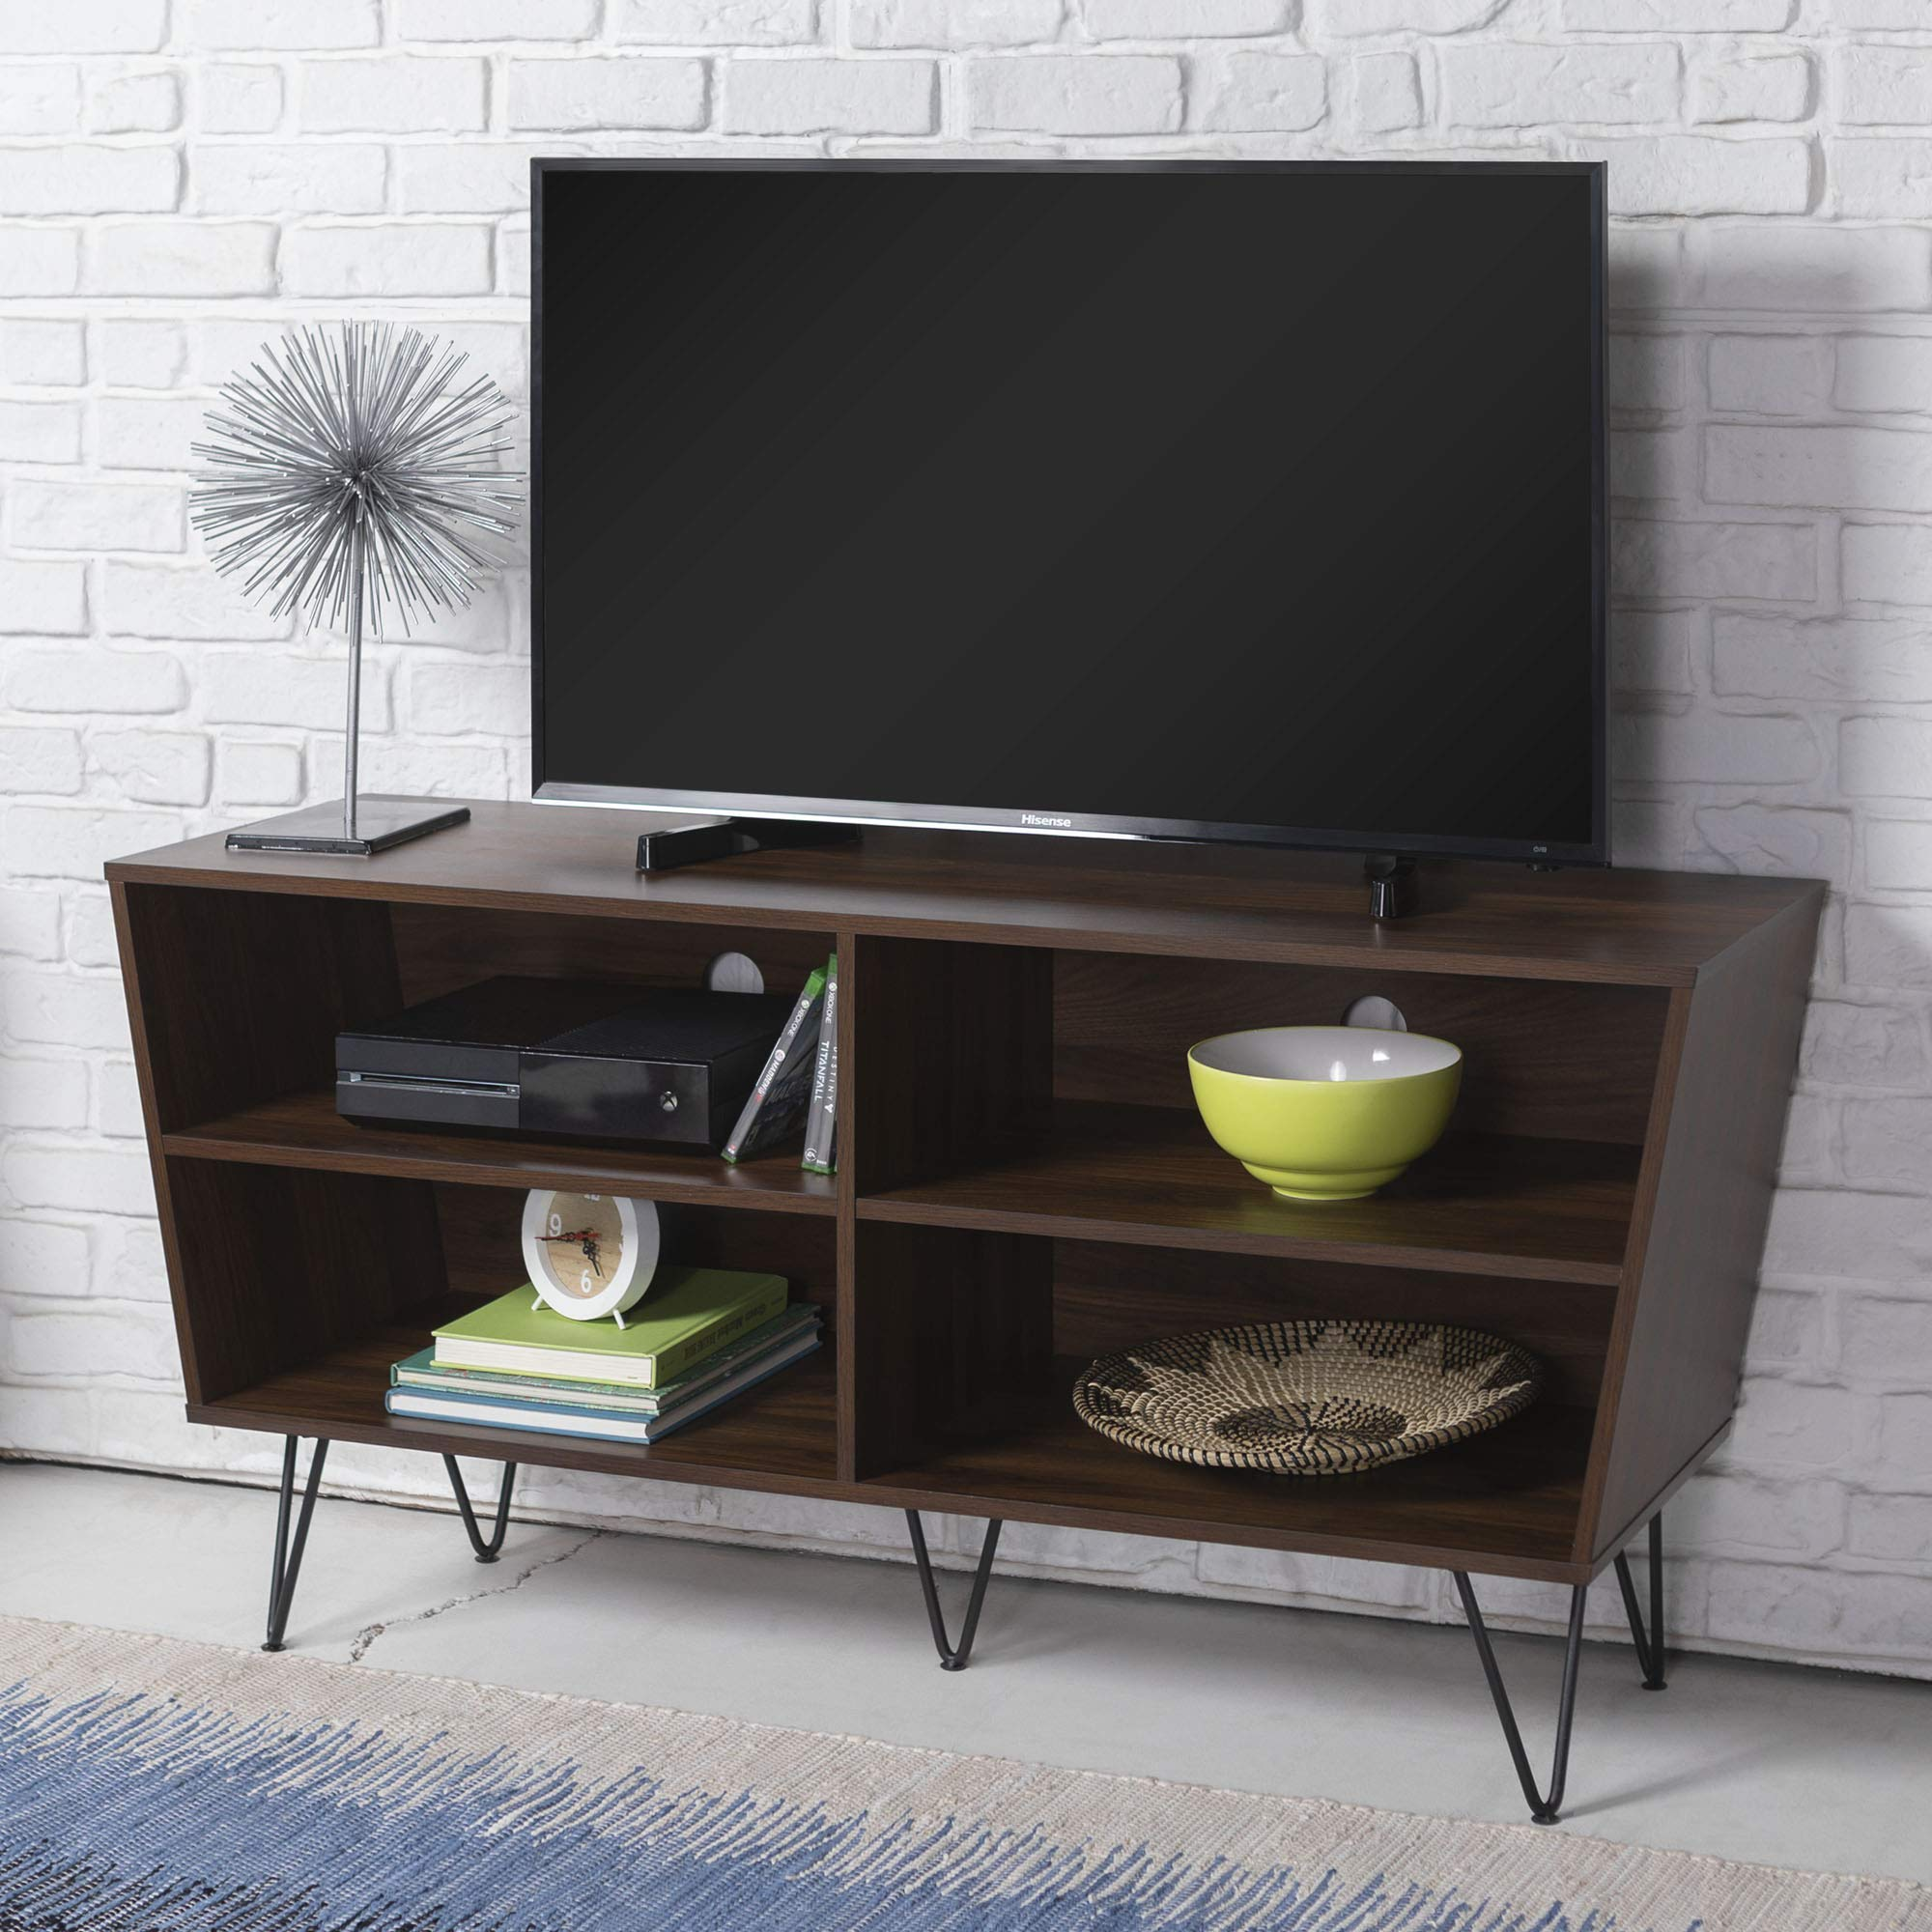 WE Furniture Mid-Century Modern Wood Hairpin Stand for TV's up to 56'' Living Room Storage, 52'', Walnut Brown by WE Furniture